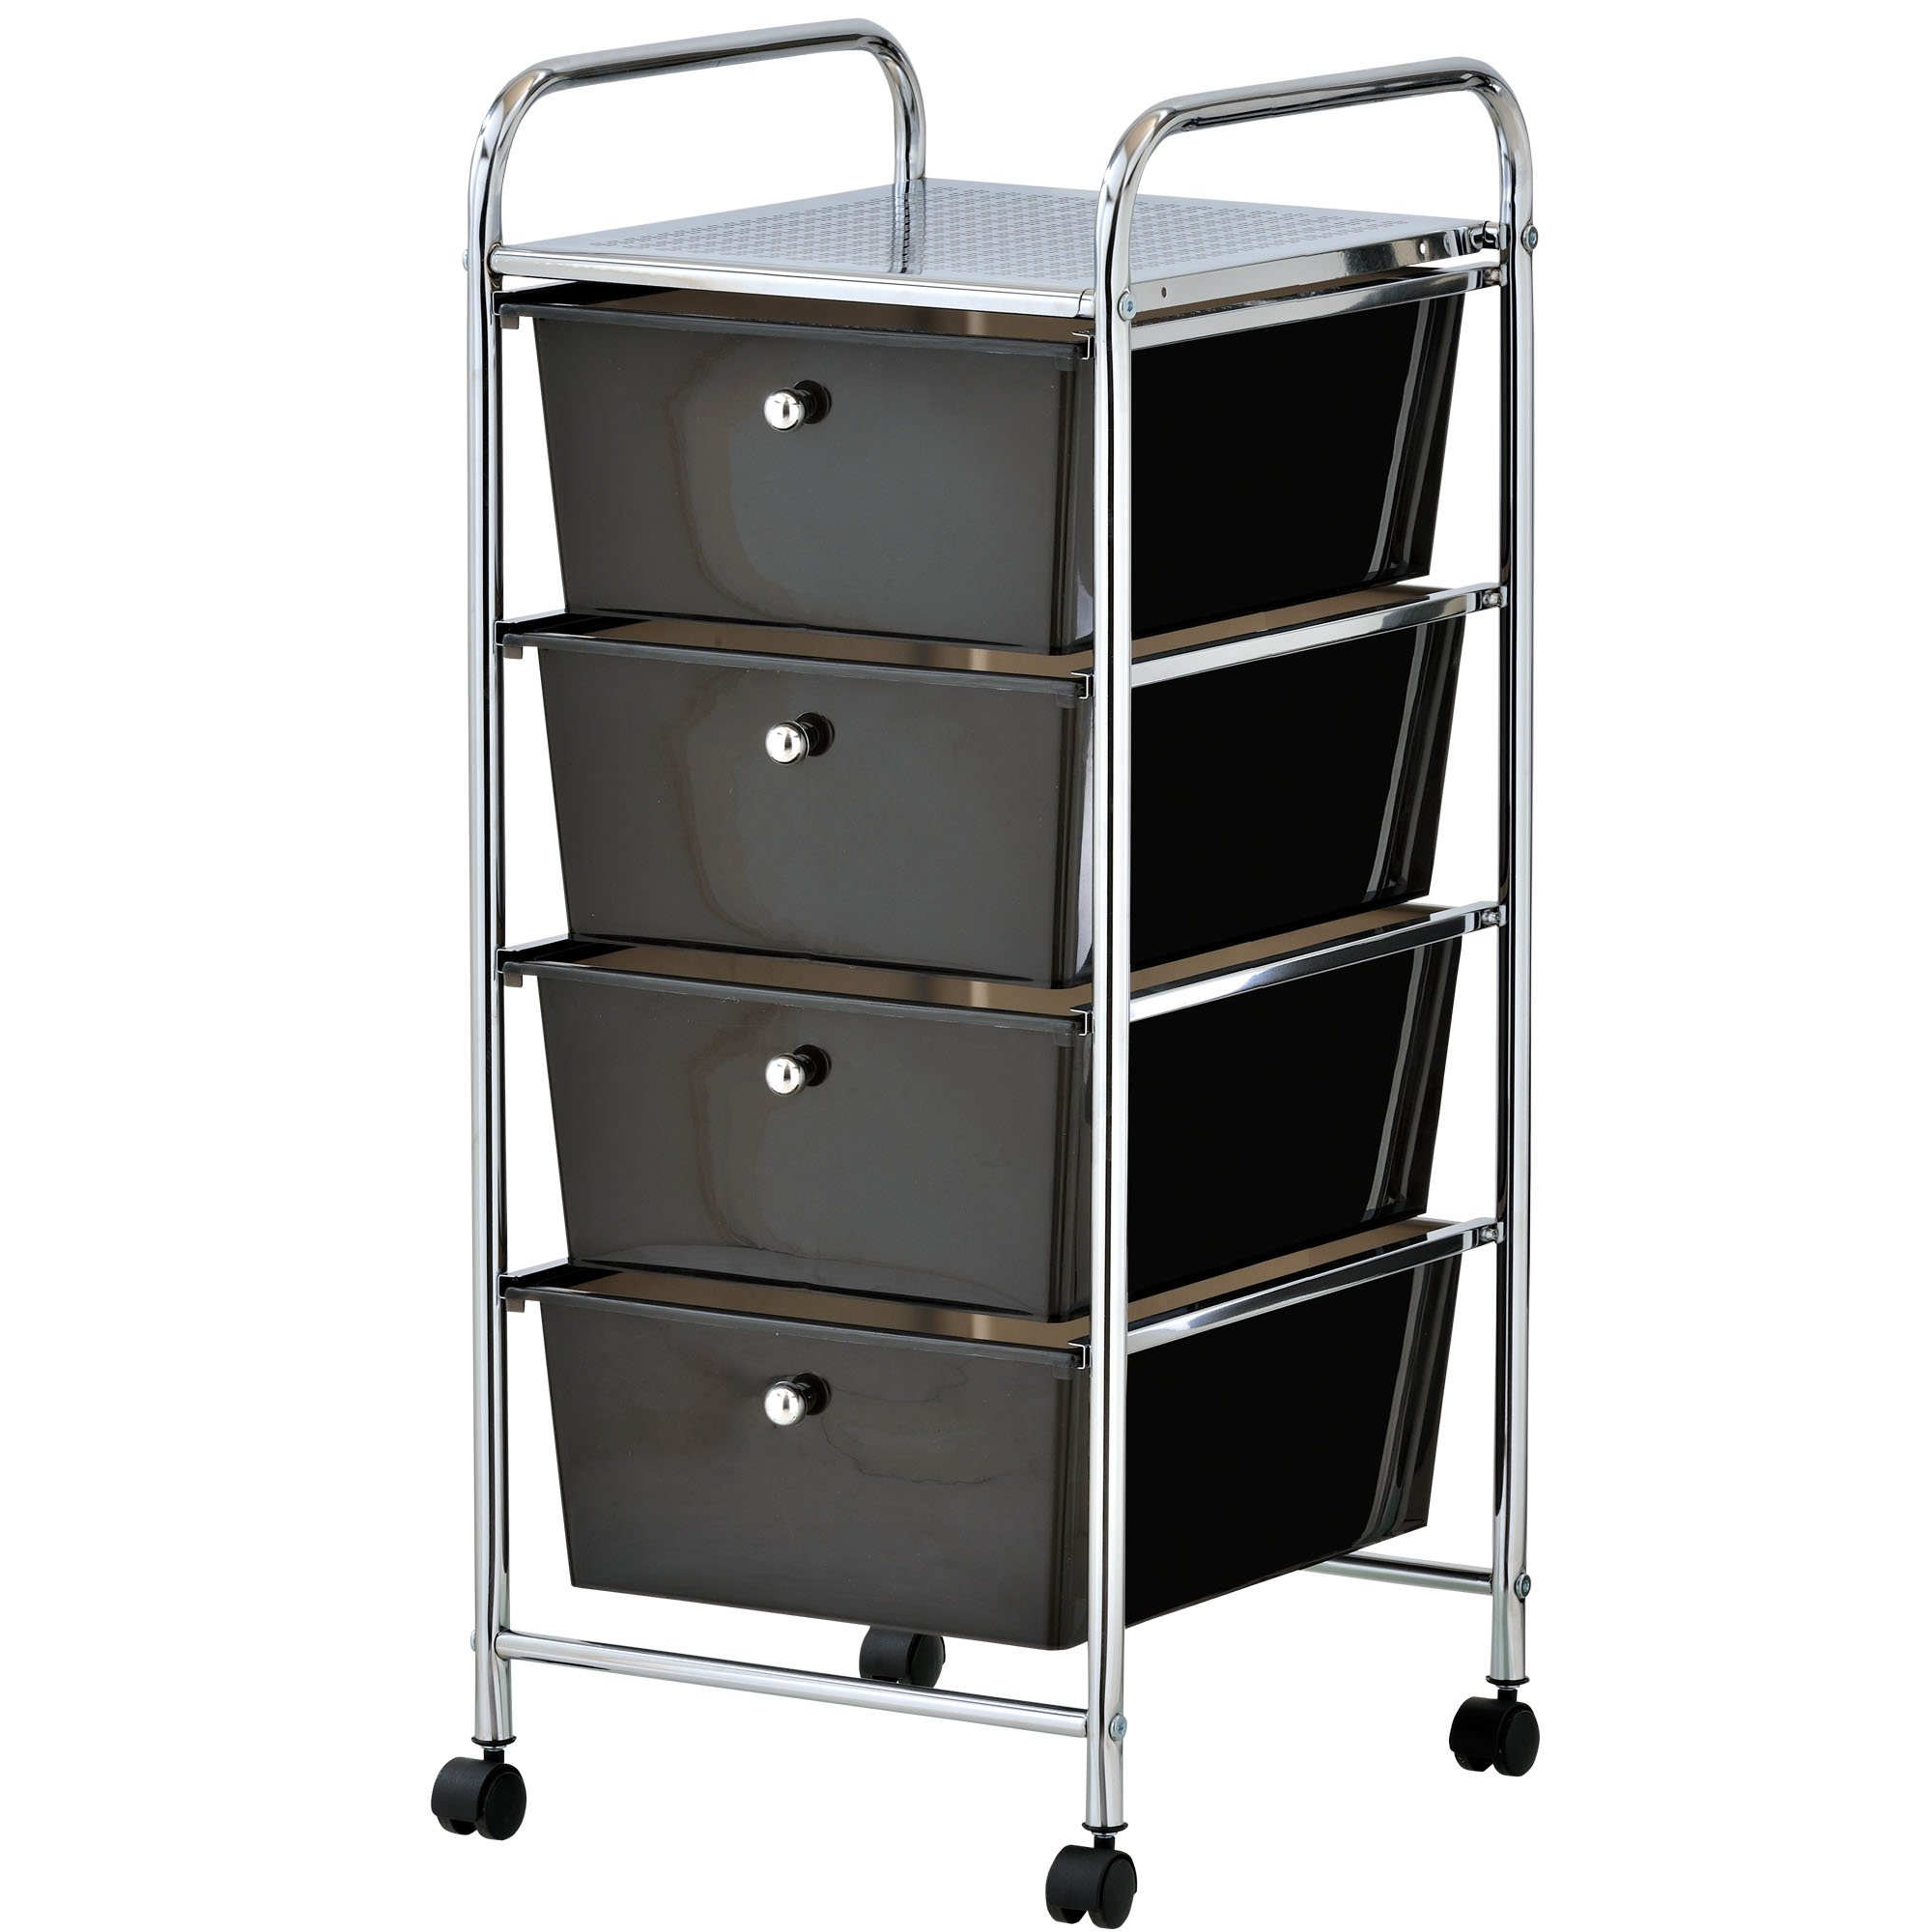 cabinets wheels heavy plastic drawer with storage duty cabinet drawers shelves doors